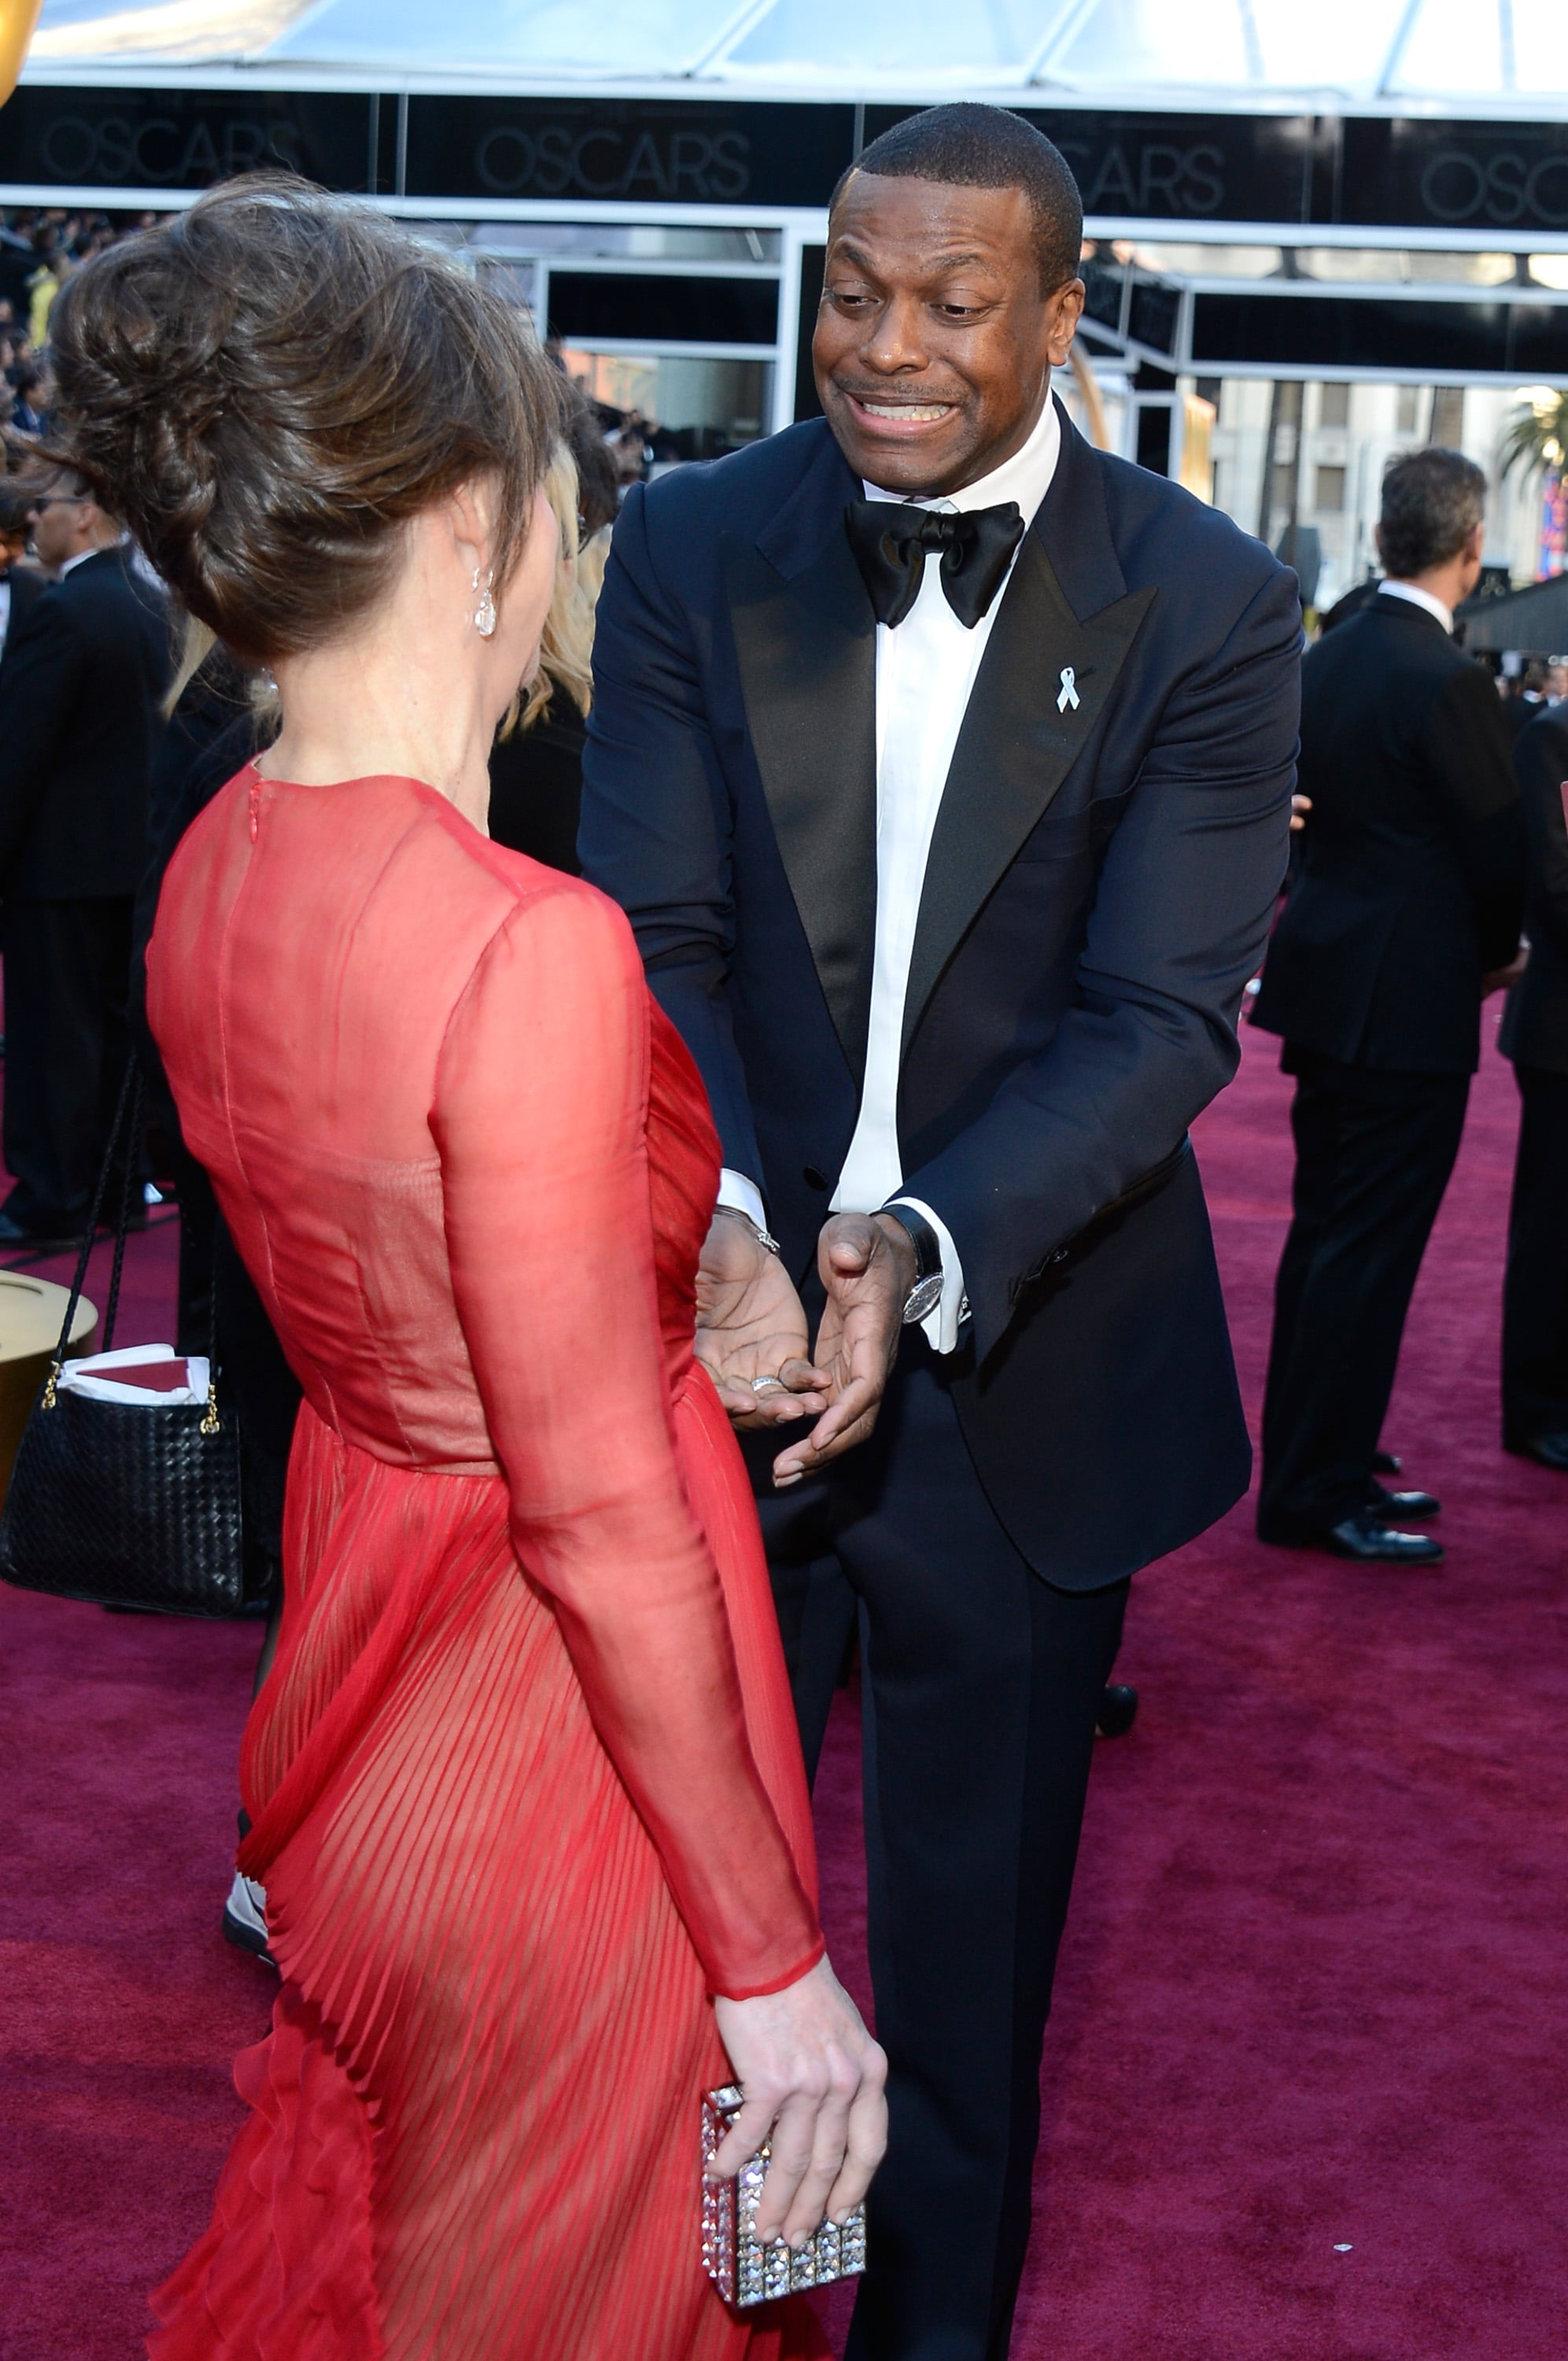 Sally Field and Chris Tucker stopped for a chat.